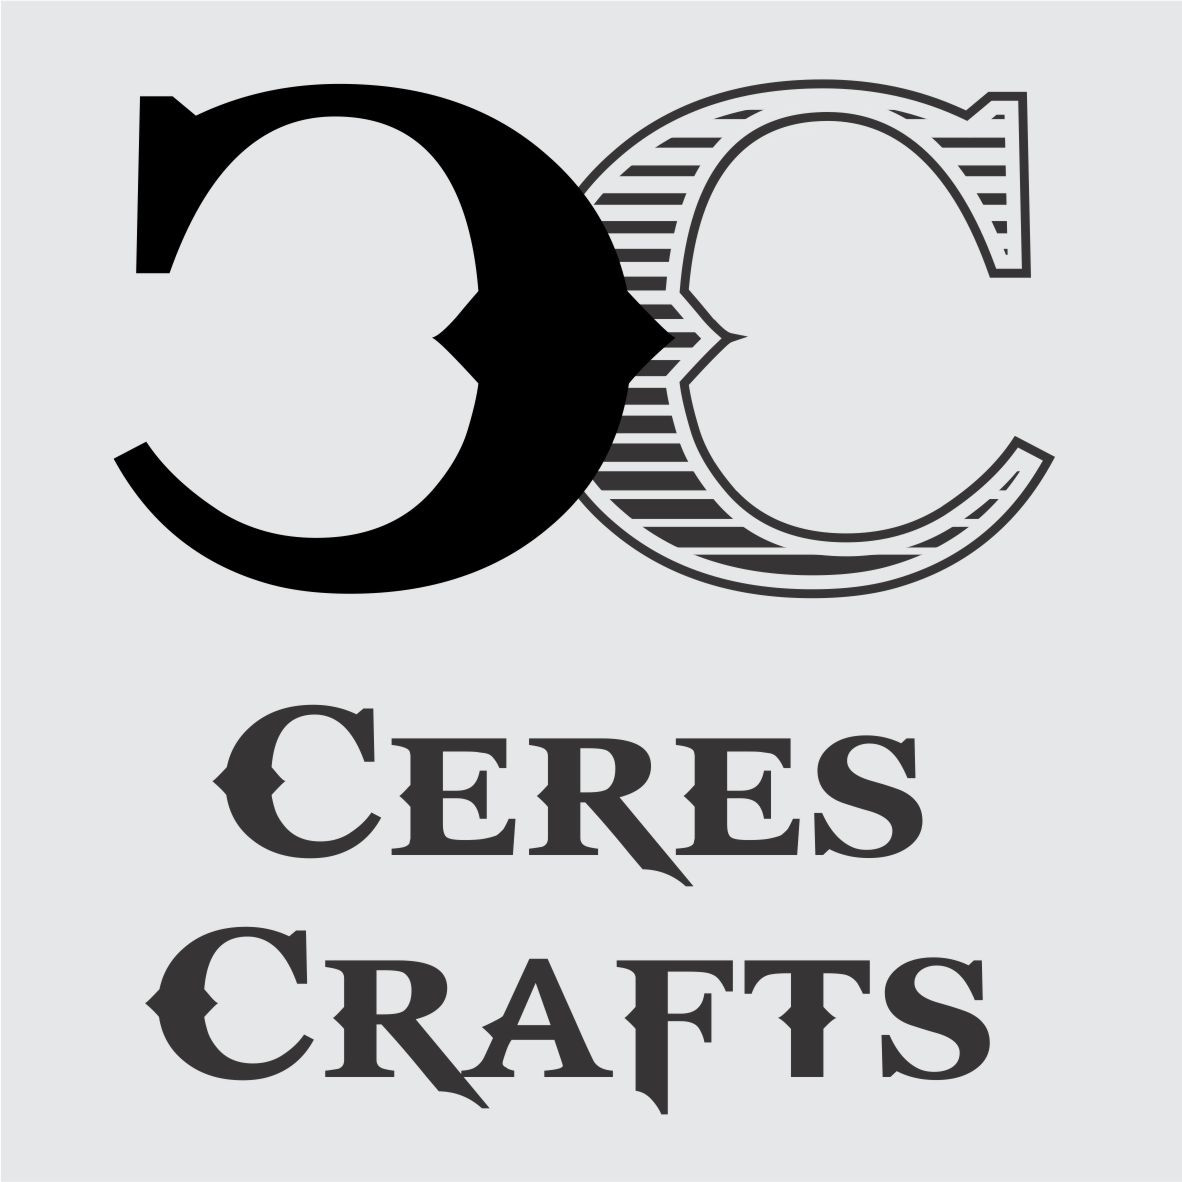 Cerescrafts's profile picture